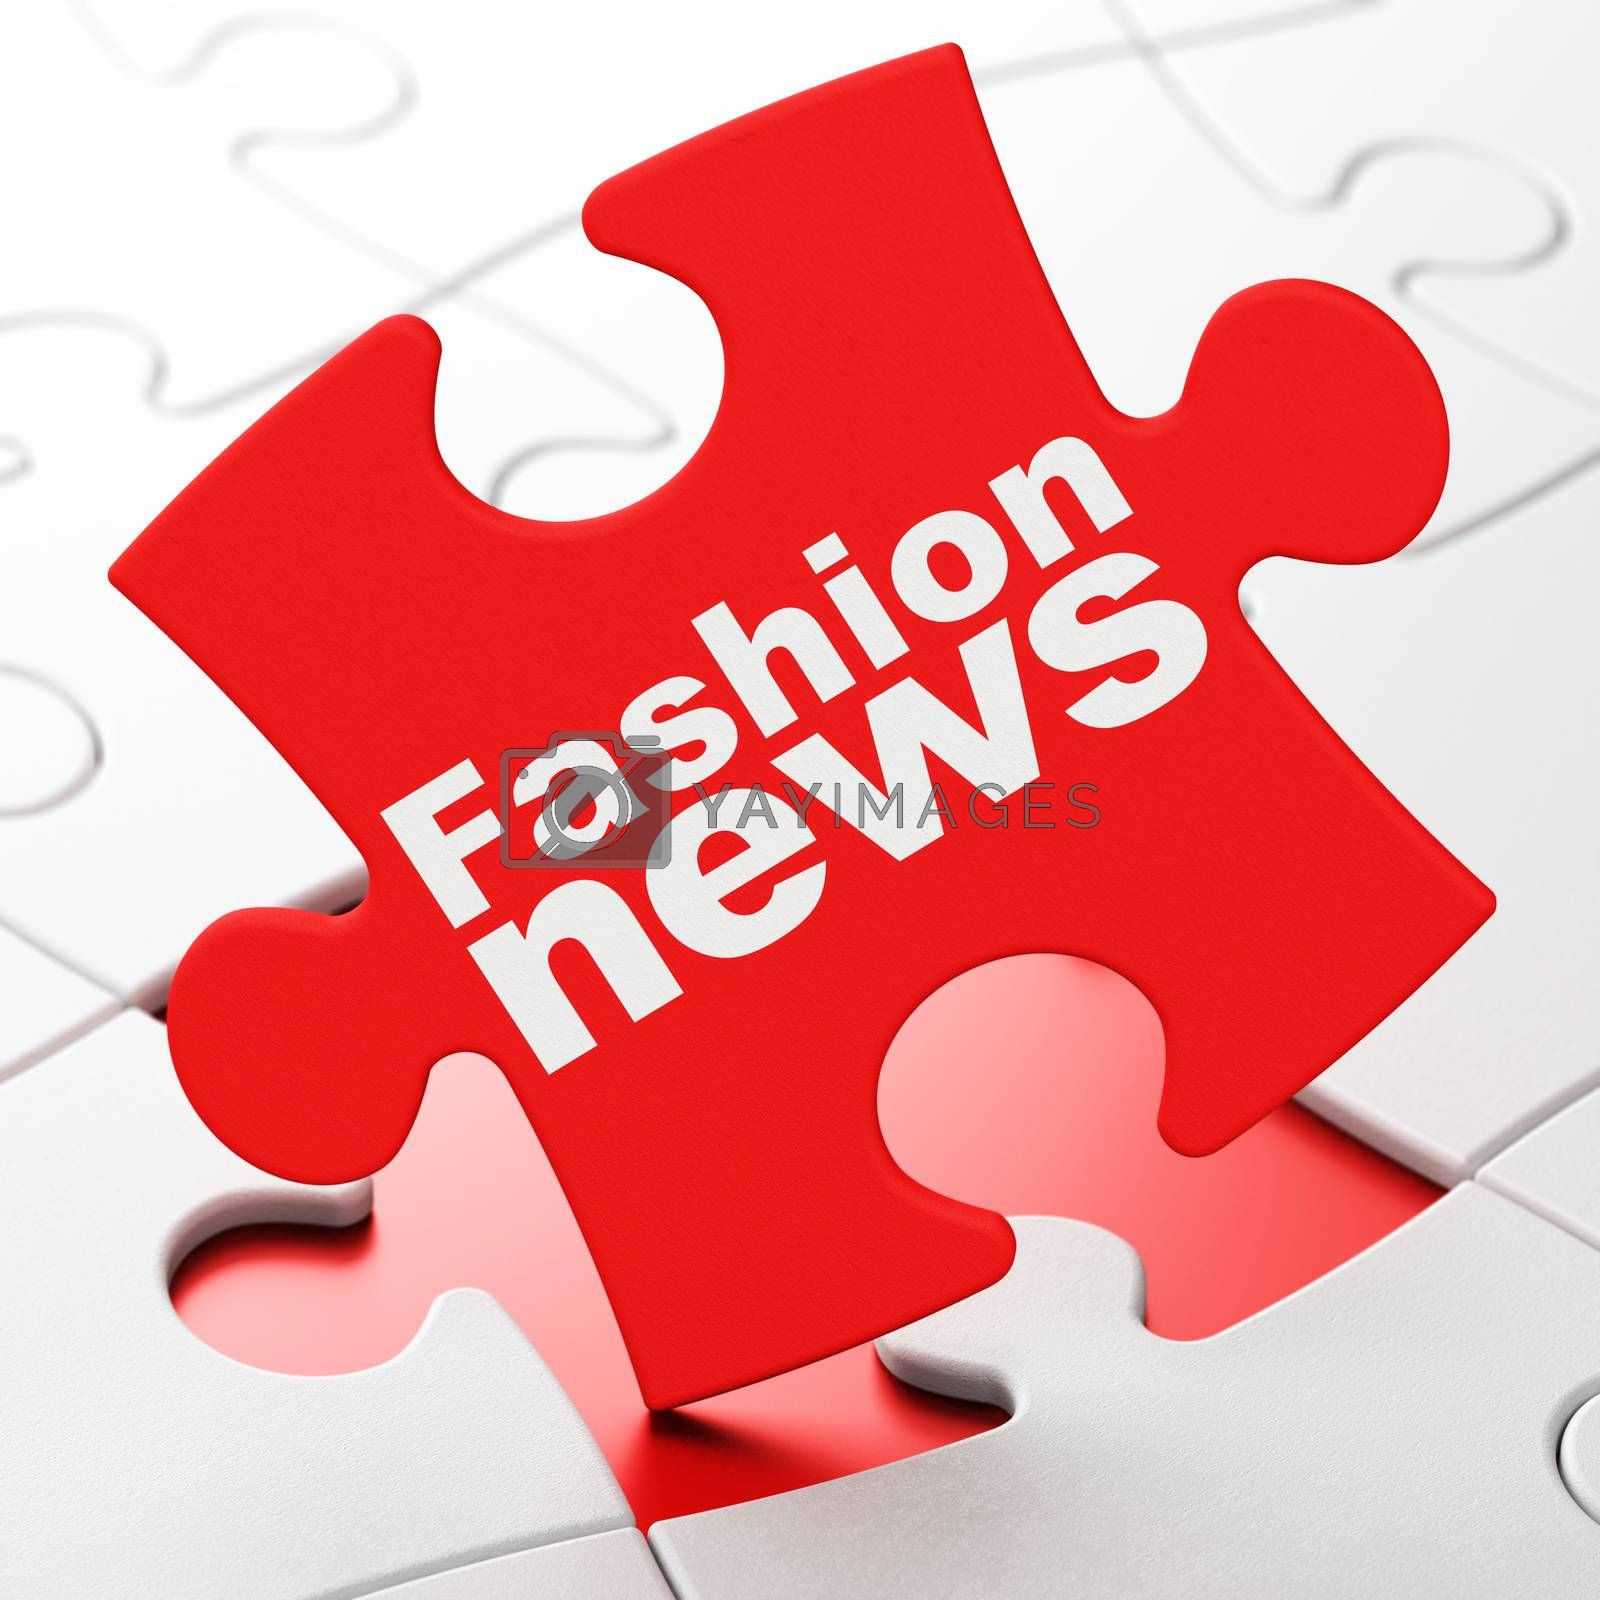 News concept: Fashion News on Red puzzle pieces background, 3D rendering